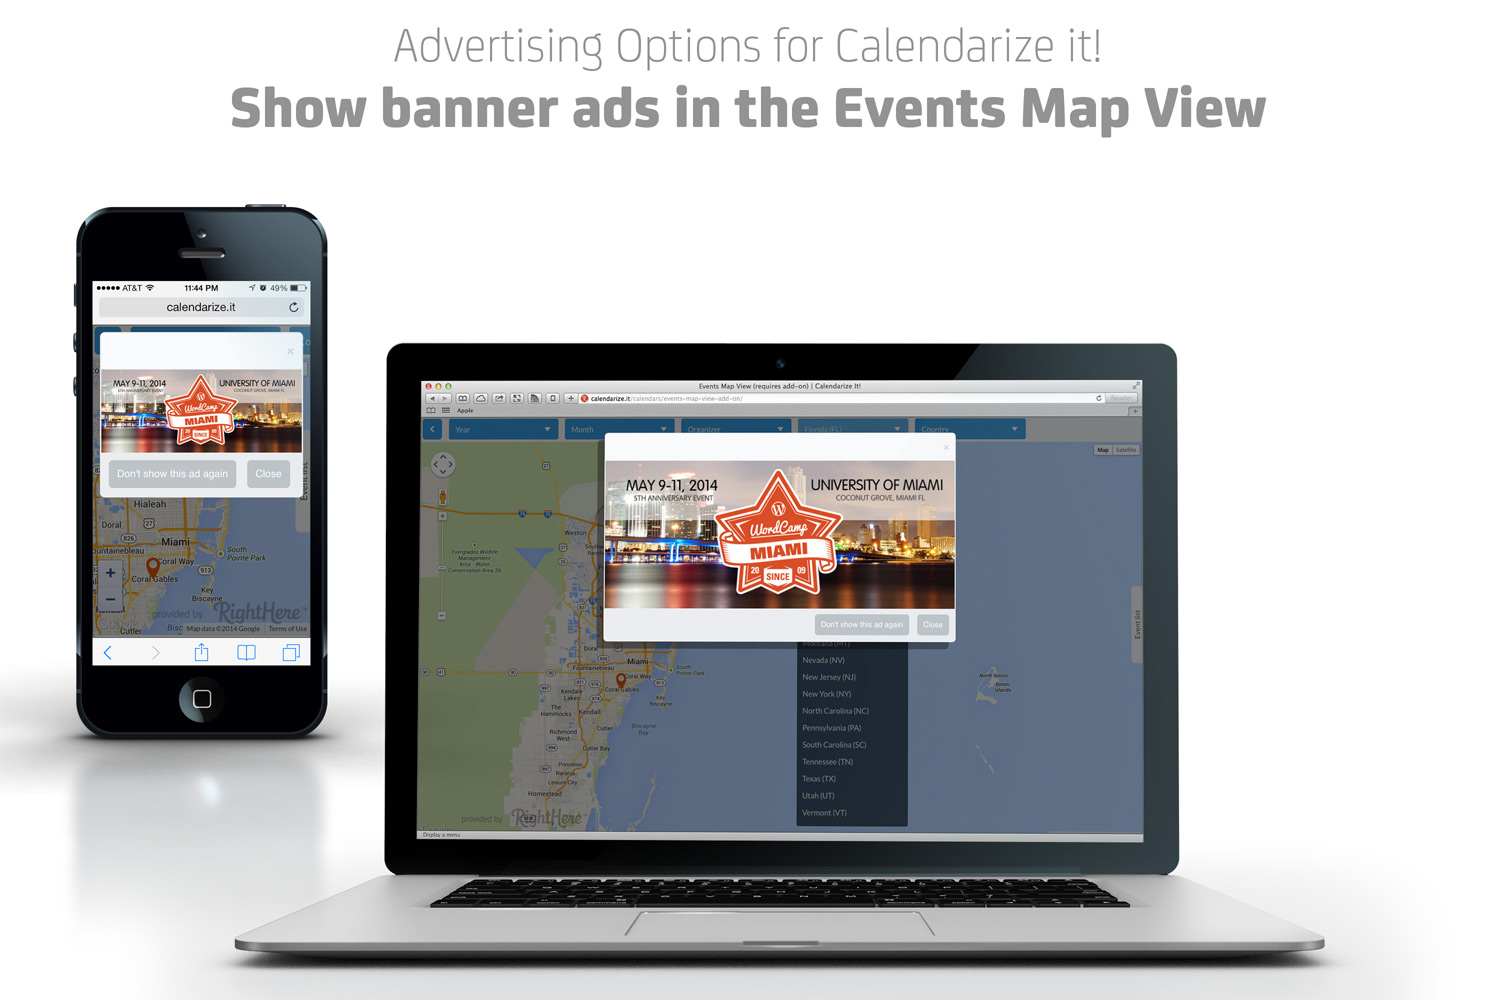 07-calendarize-it-events-map-view-advertising-options